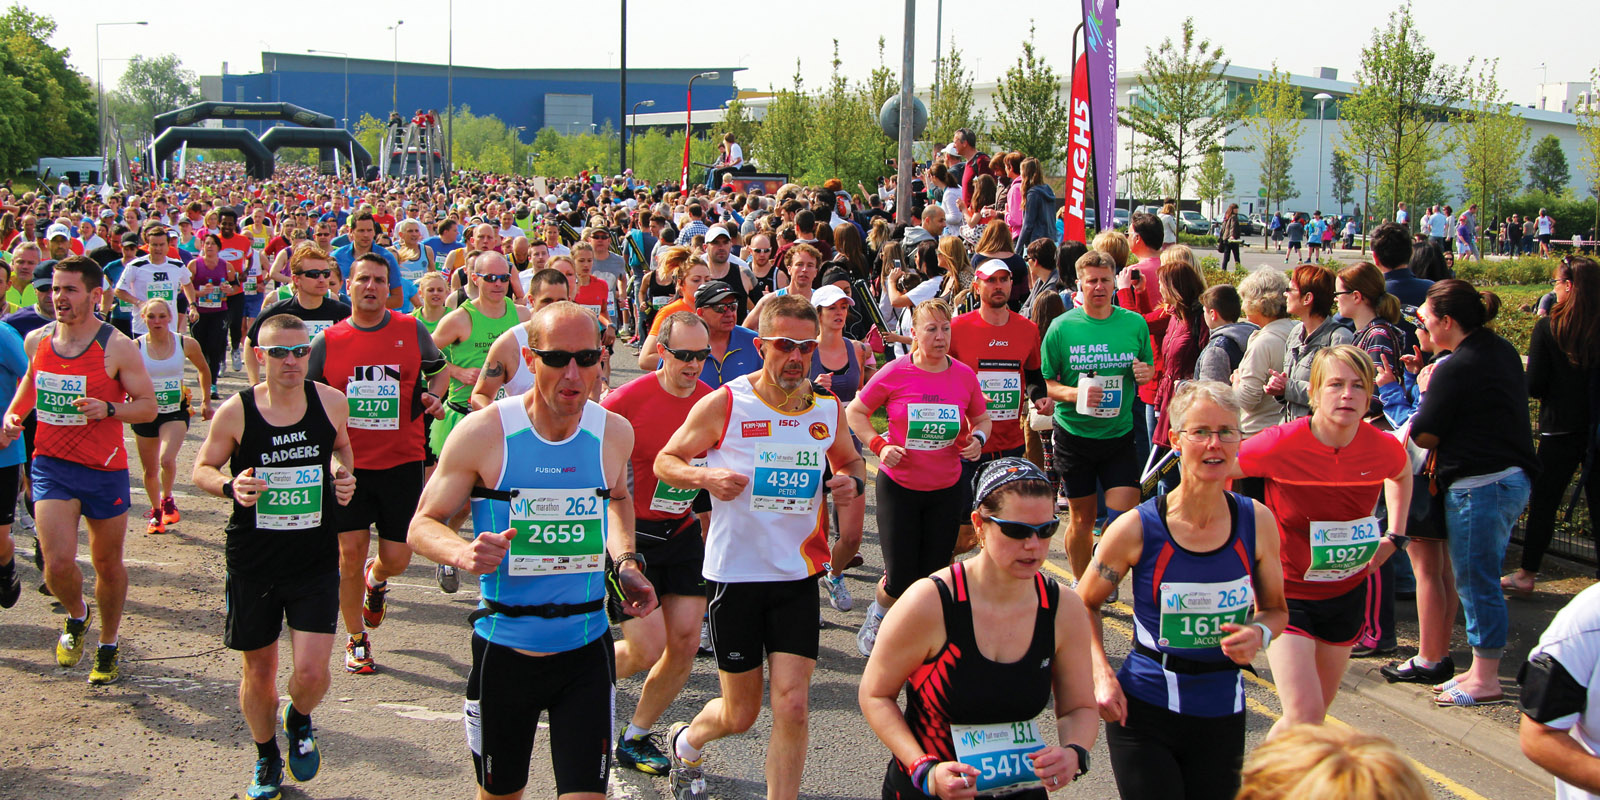 runners in the Milton Keynes marathon